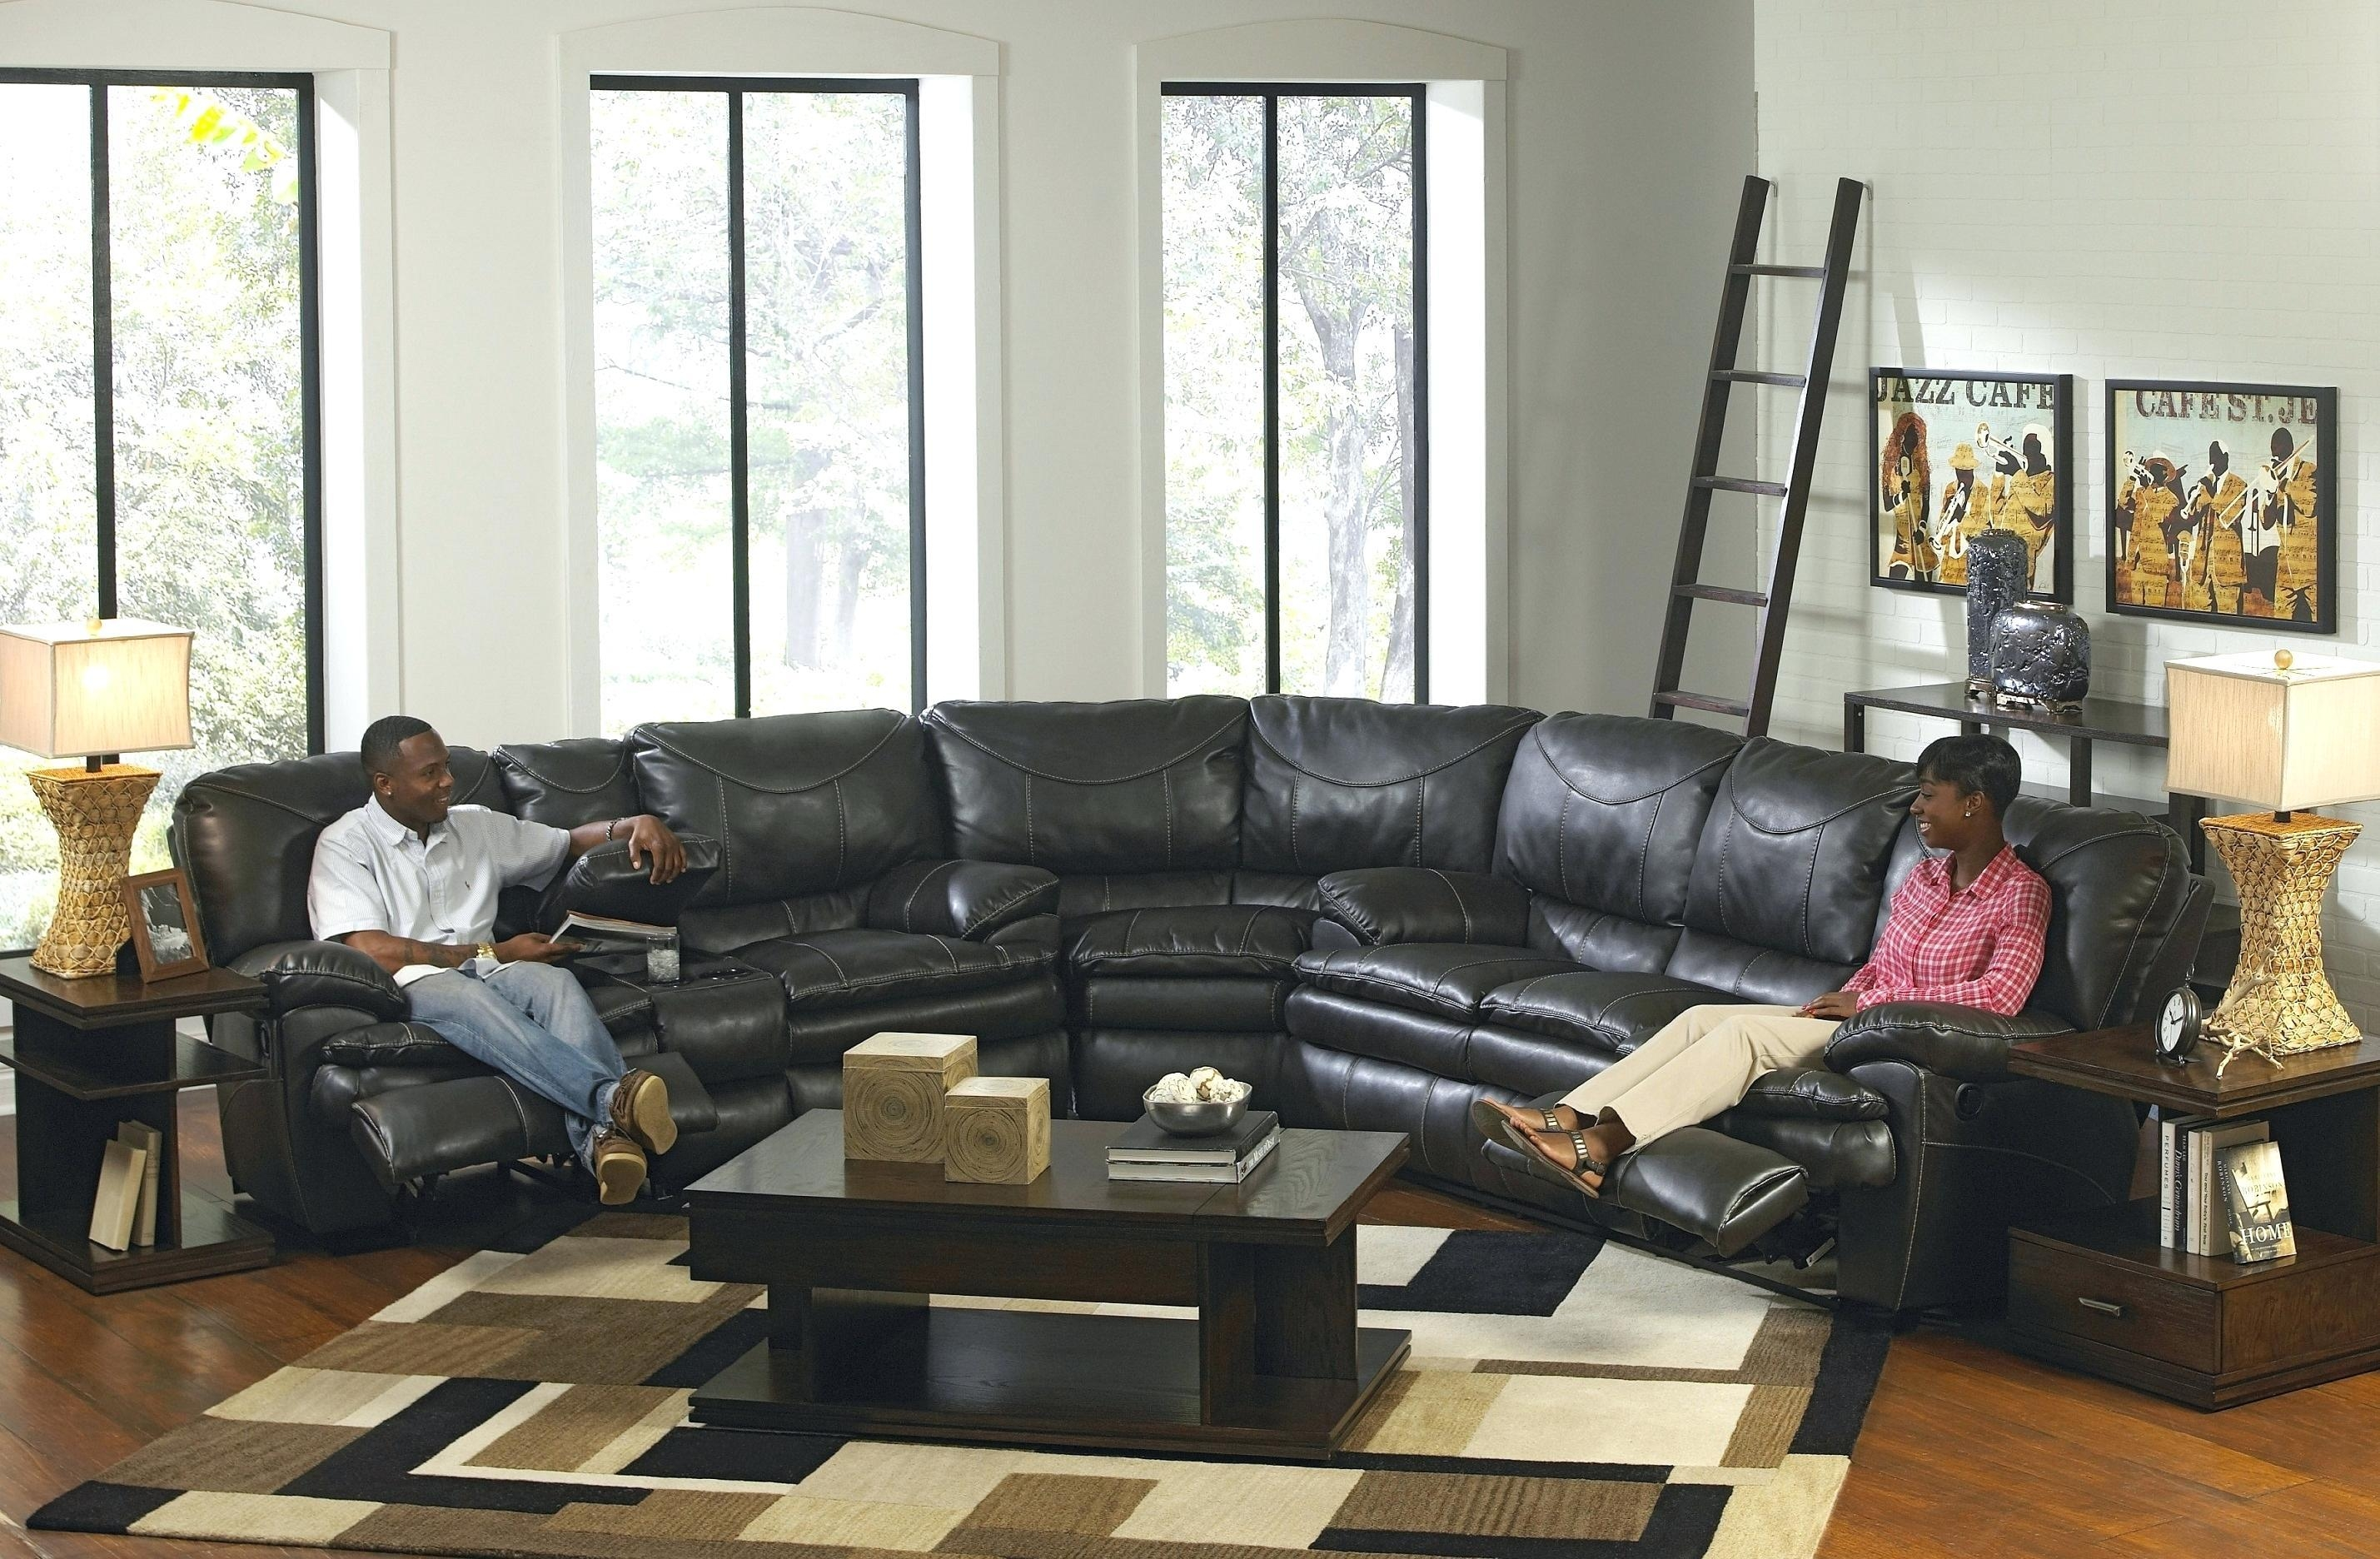 3 Seater Recliner Leather Sofa Gallery Of Stunning Sectional With Within Berkline Sofa Recliner (Image 1 of 20)